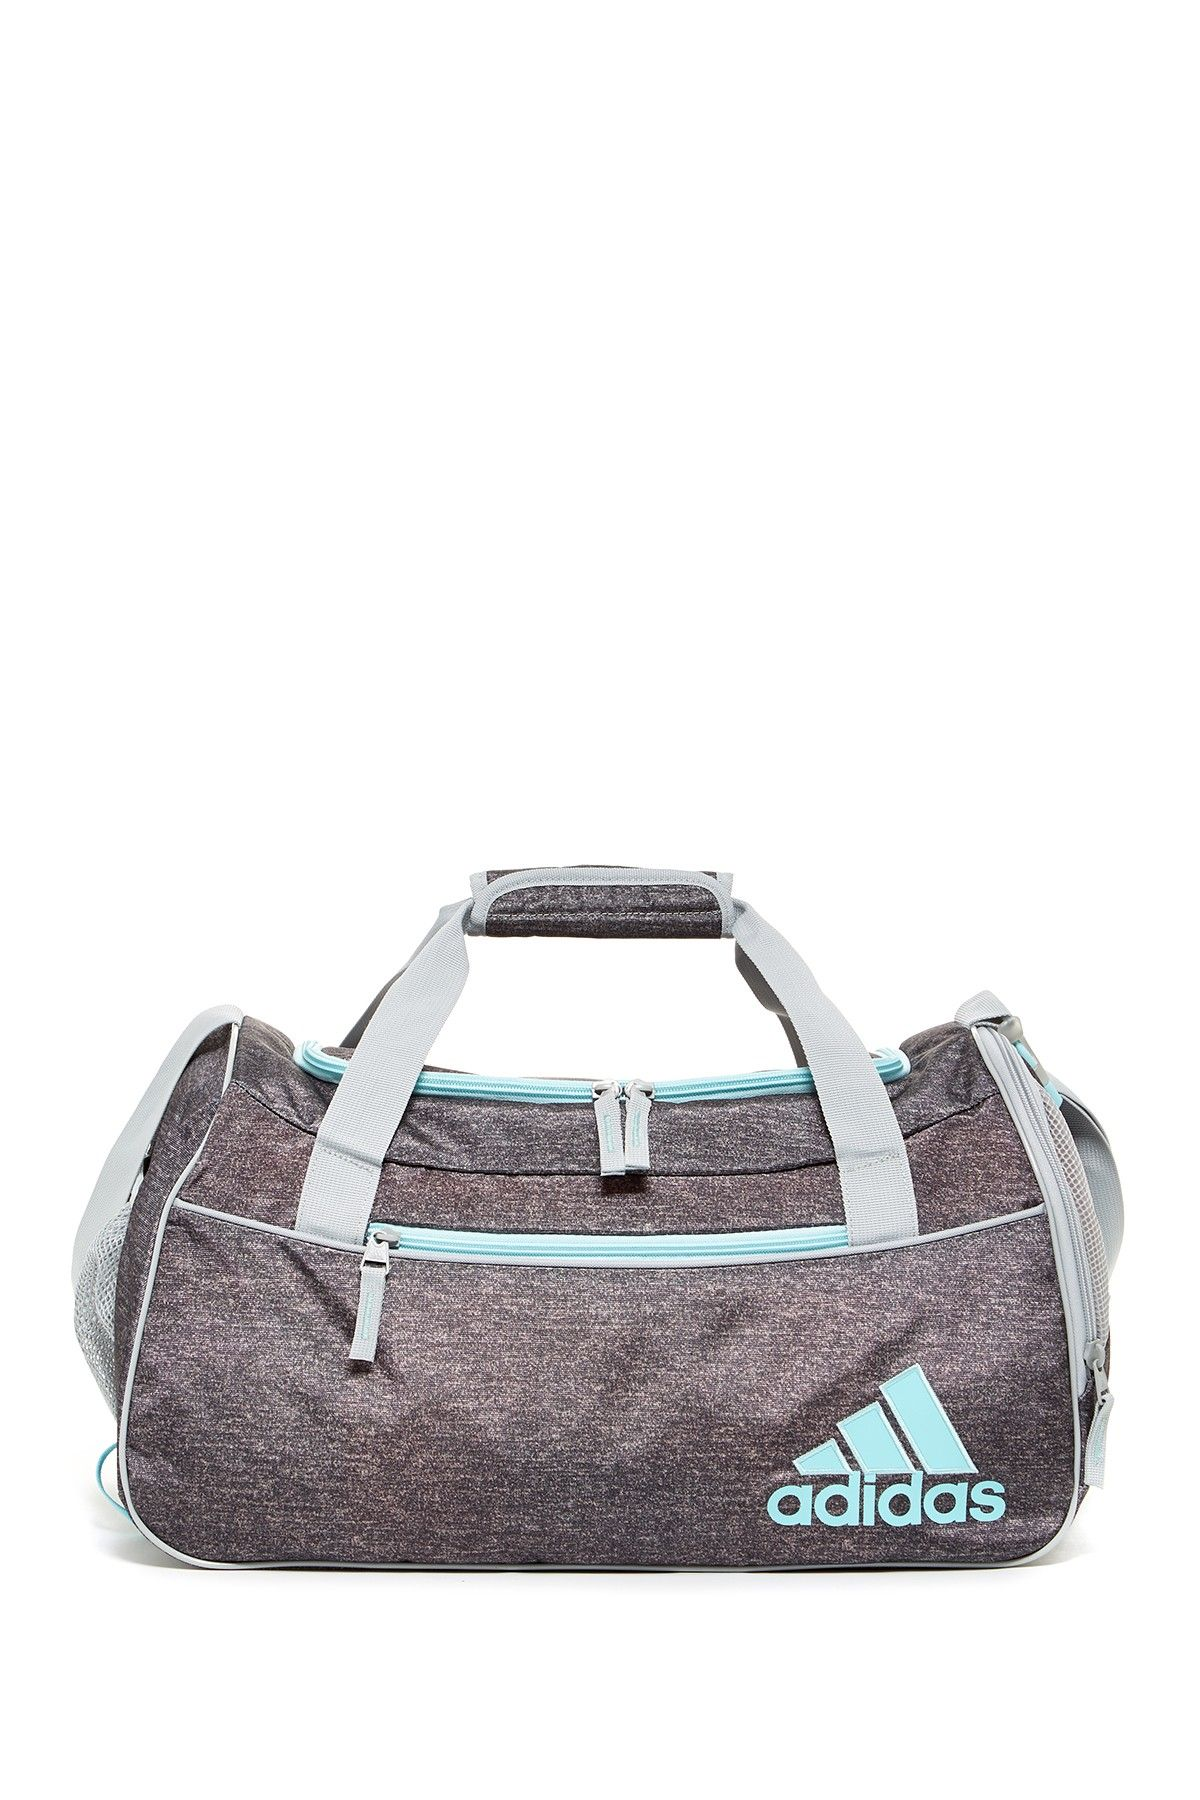 fe6fb6c040 Squad II Duffle Bag by adidas on  nordstrom rack